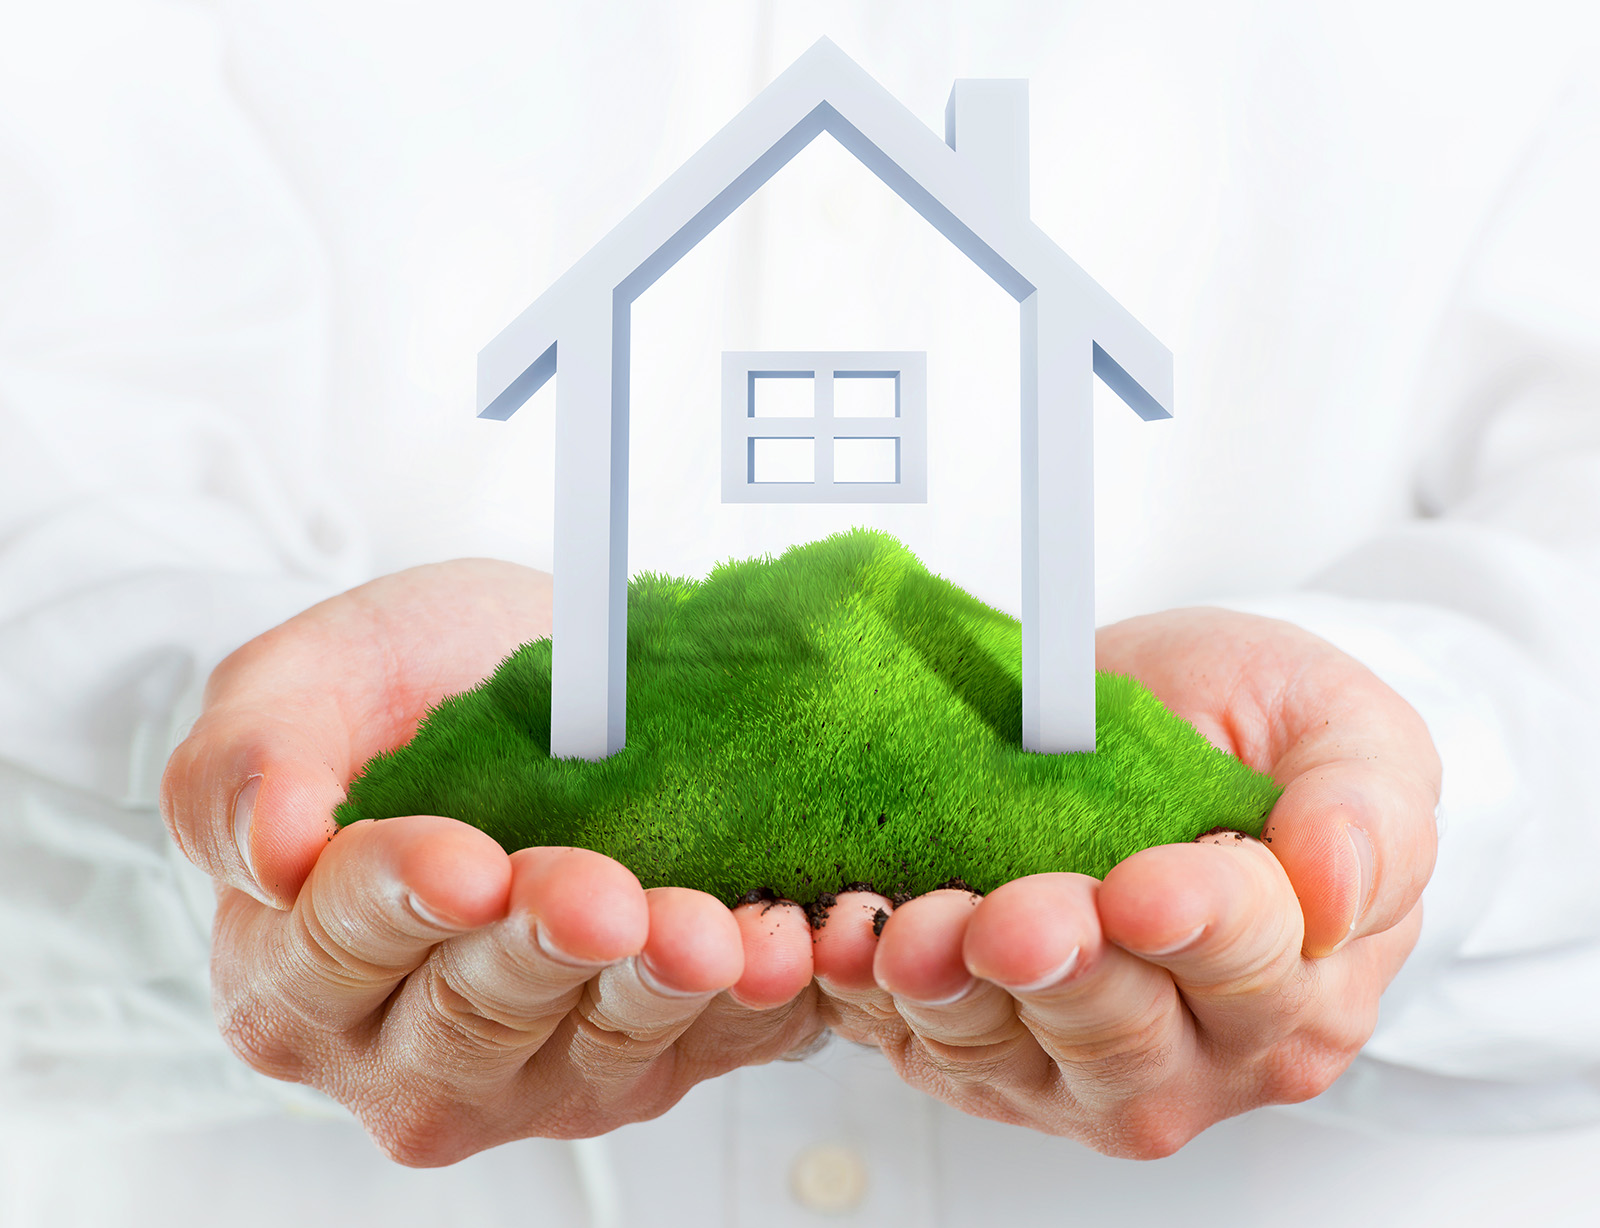 House in my hands and grassland 50043